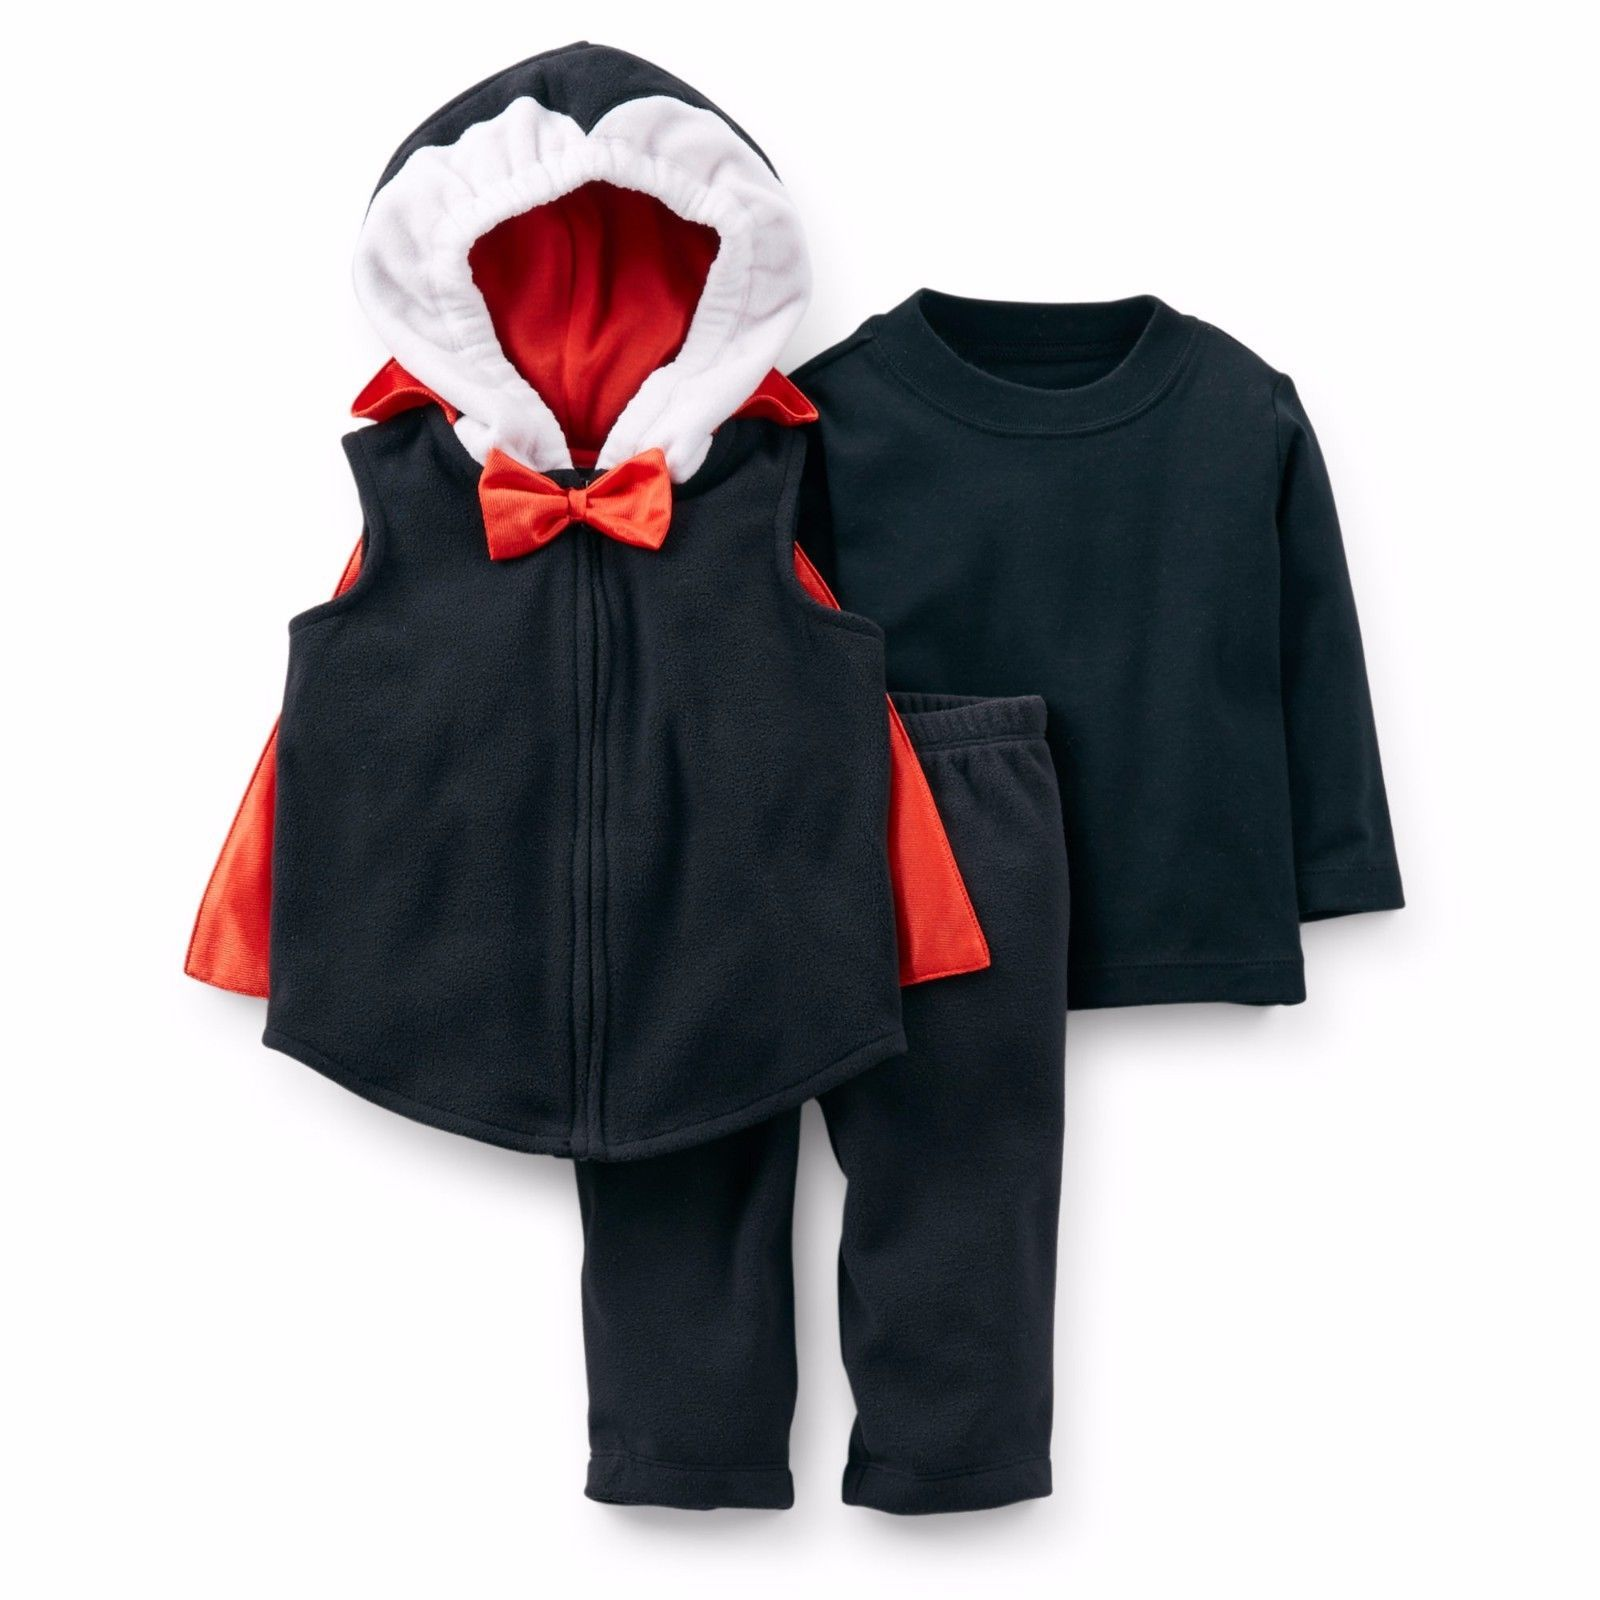 NEW NWT Boys Carter's Halloween Vampire Costume Size 12 Months